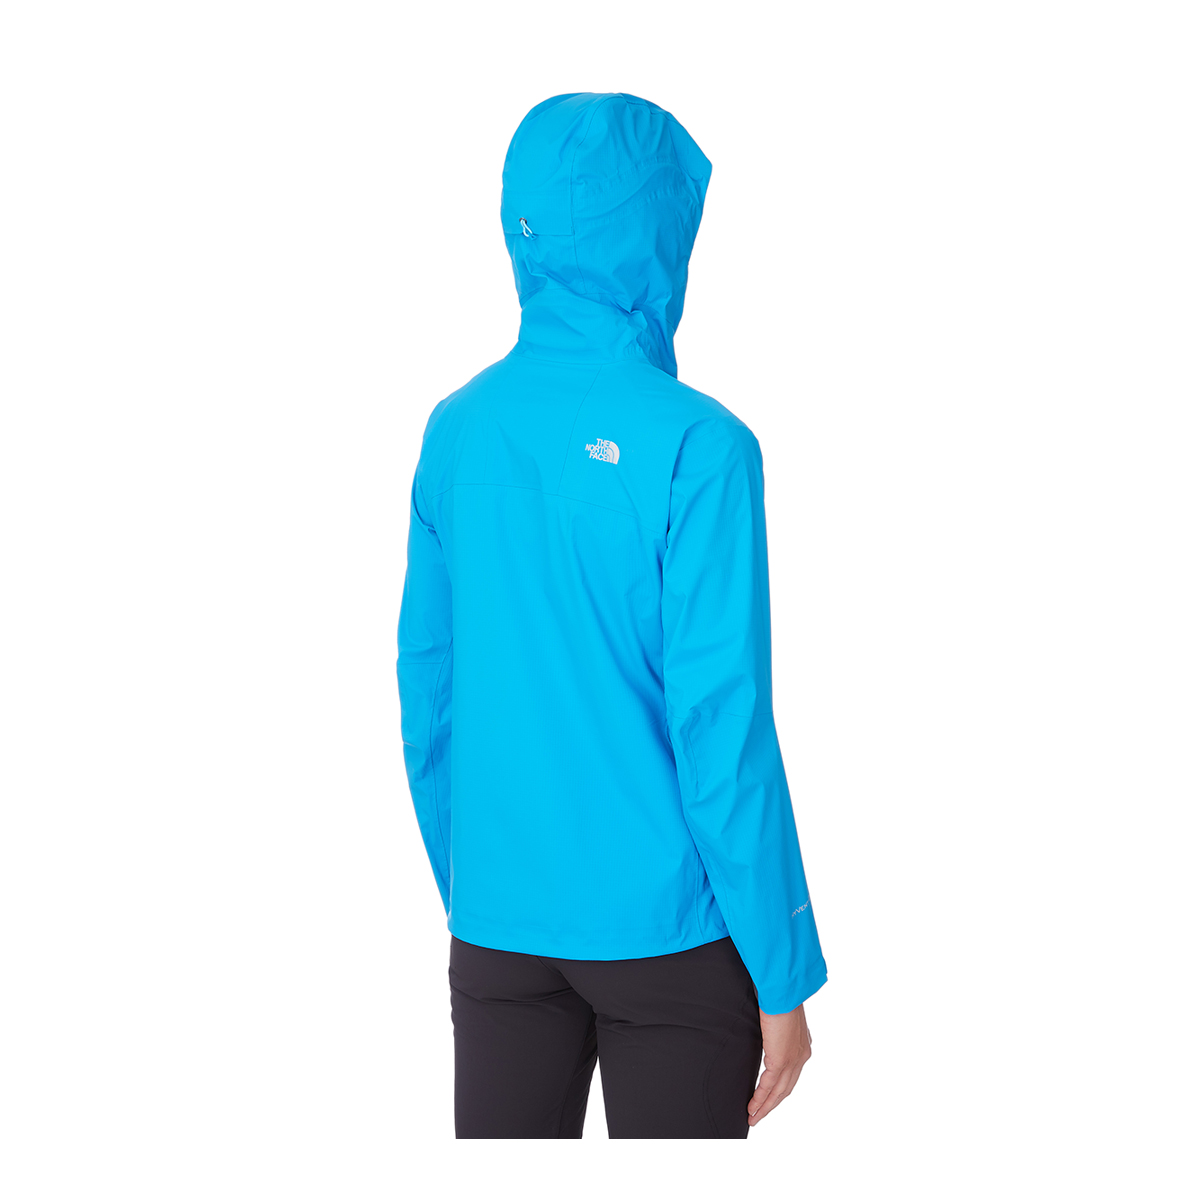 56e87a4fc6 The North Face Diad Jacket (Woman) | Technical Jackets | EpicTV Shop